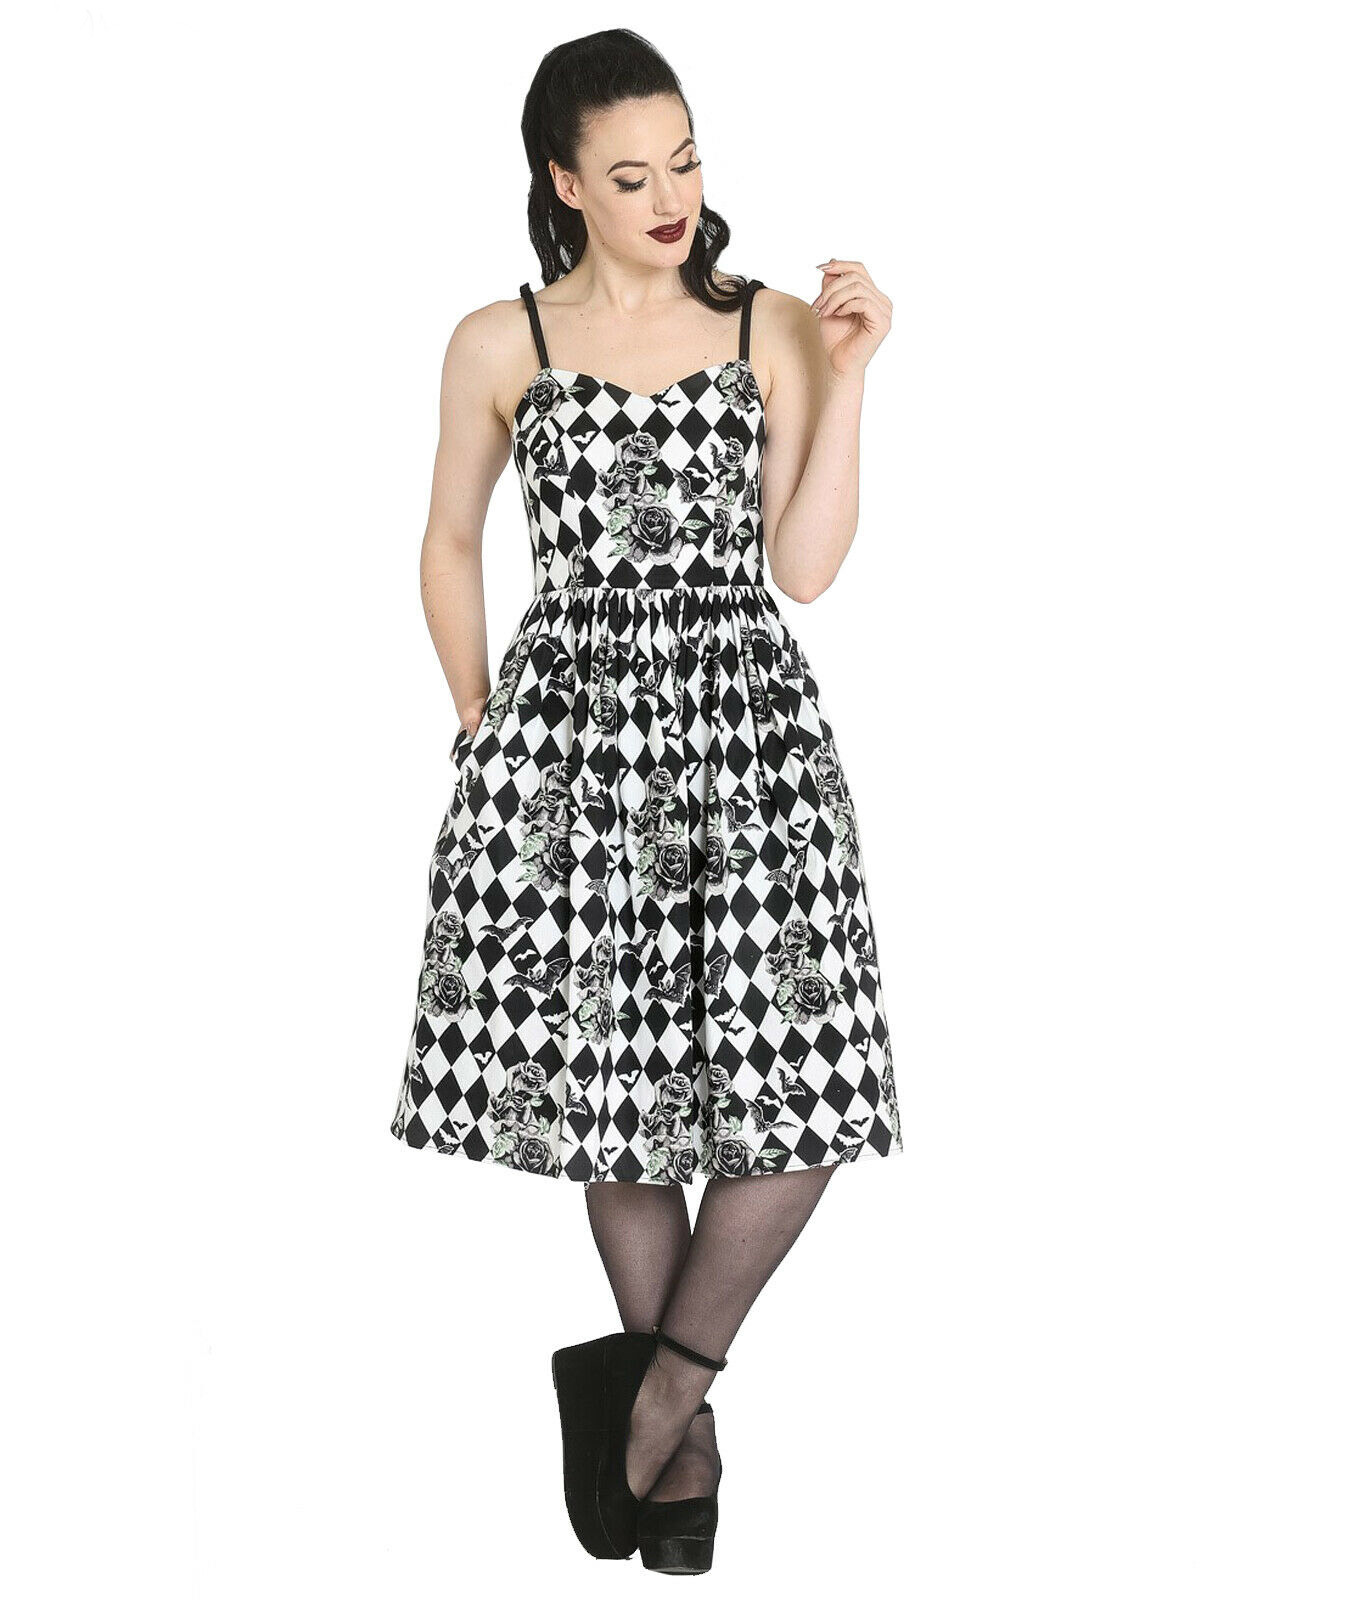 Hell-Bunny-Black-Harlequin-Pinup-50s-Gothic-Dress-HAUNTLEY-Bats-Roses-All-Sizes thumbnail 11